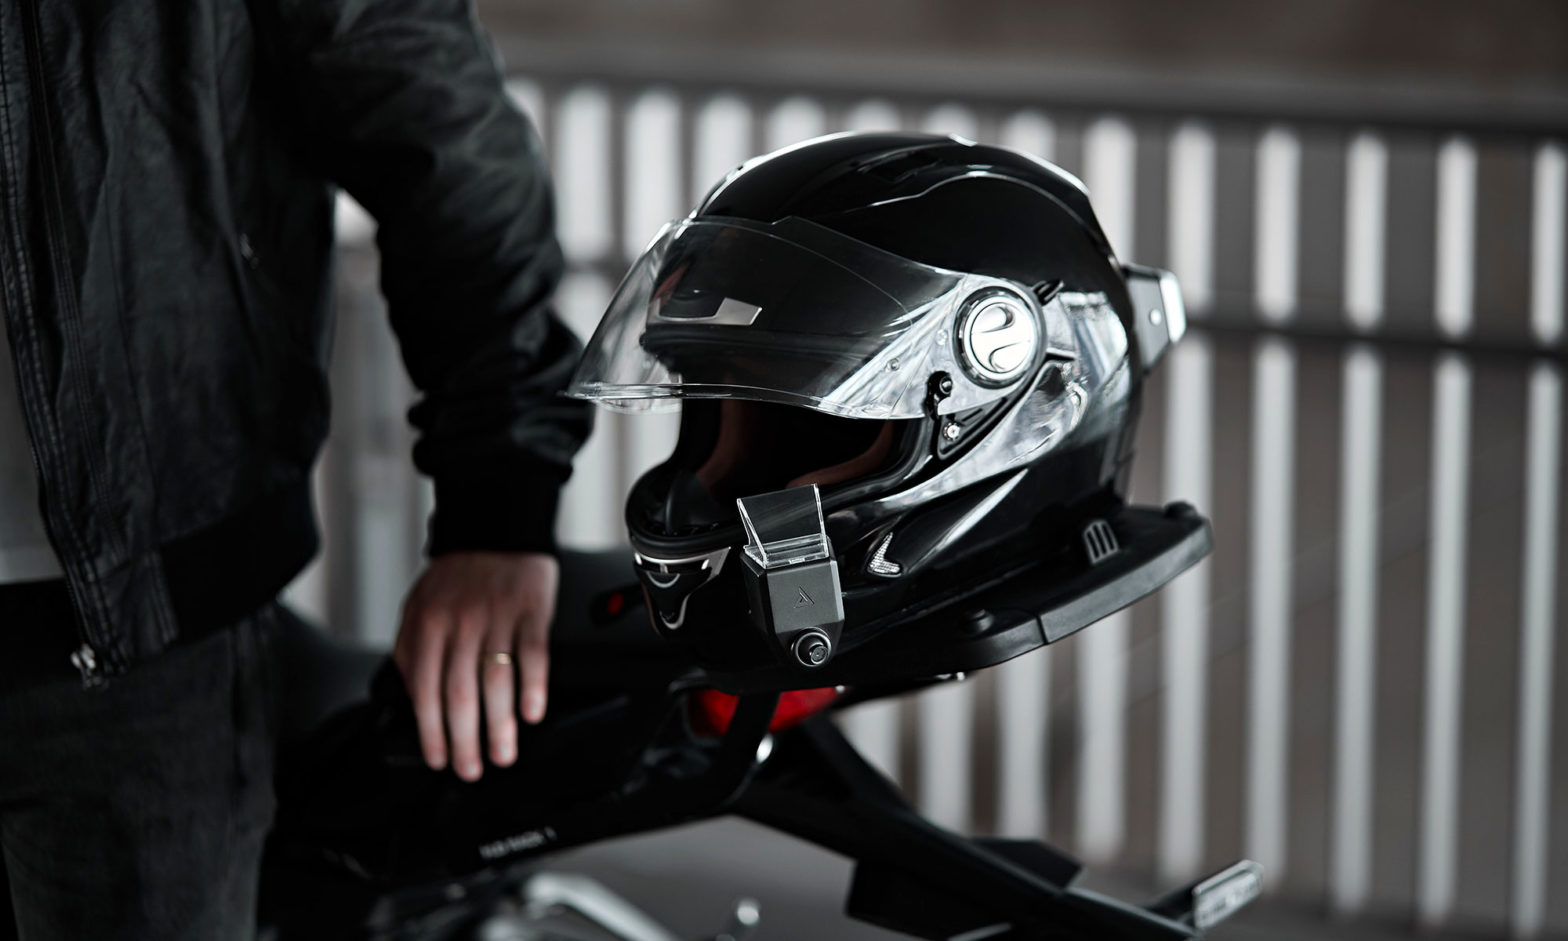 Dual Camera AR Attachment for Motorcycle Helmet